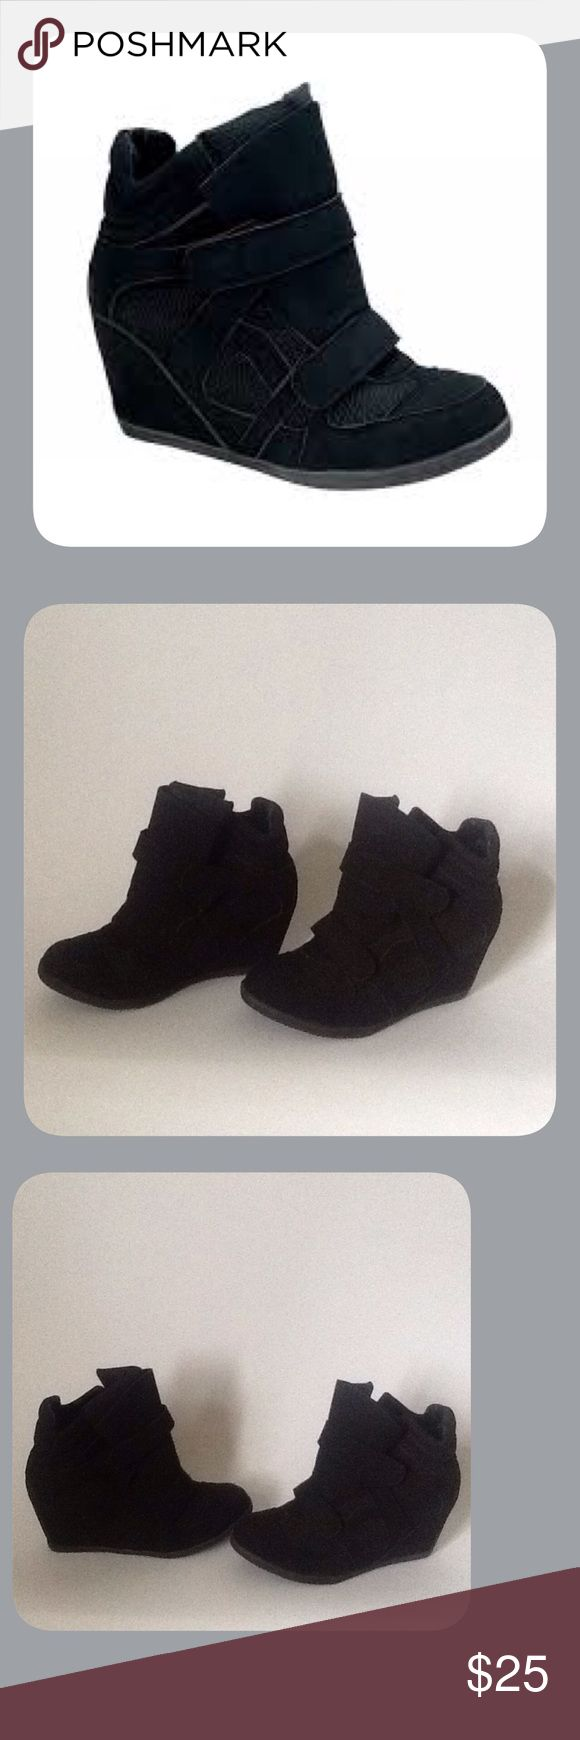 Black Wedge Sneakers These are New and have Never been Worn!! To keep Shipping Low I will ship Without the Box!!! Reasonable Offers Only!!! De Blossom Collection Shoes Sneakers